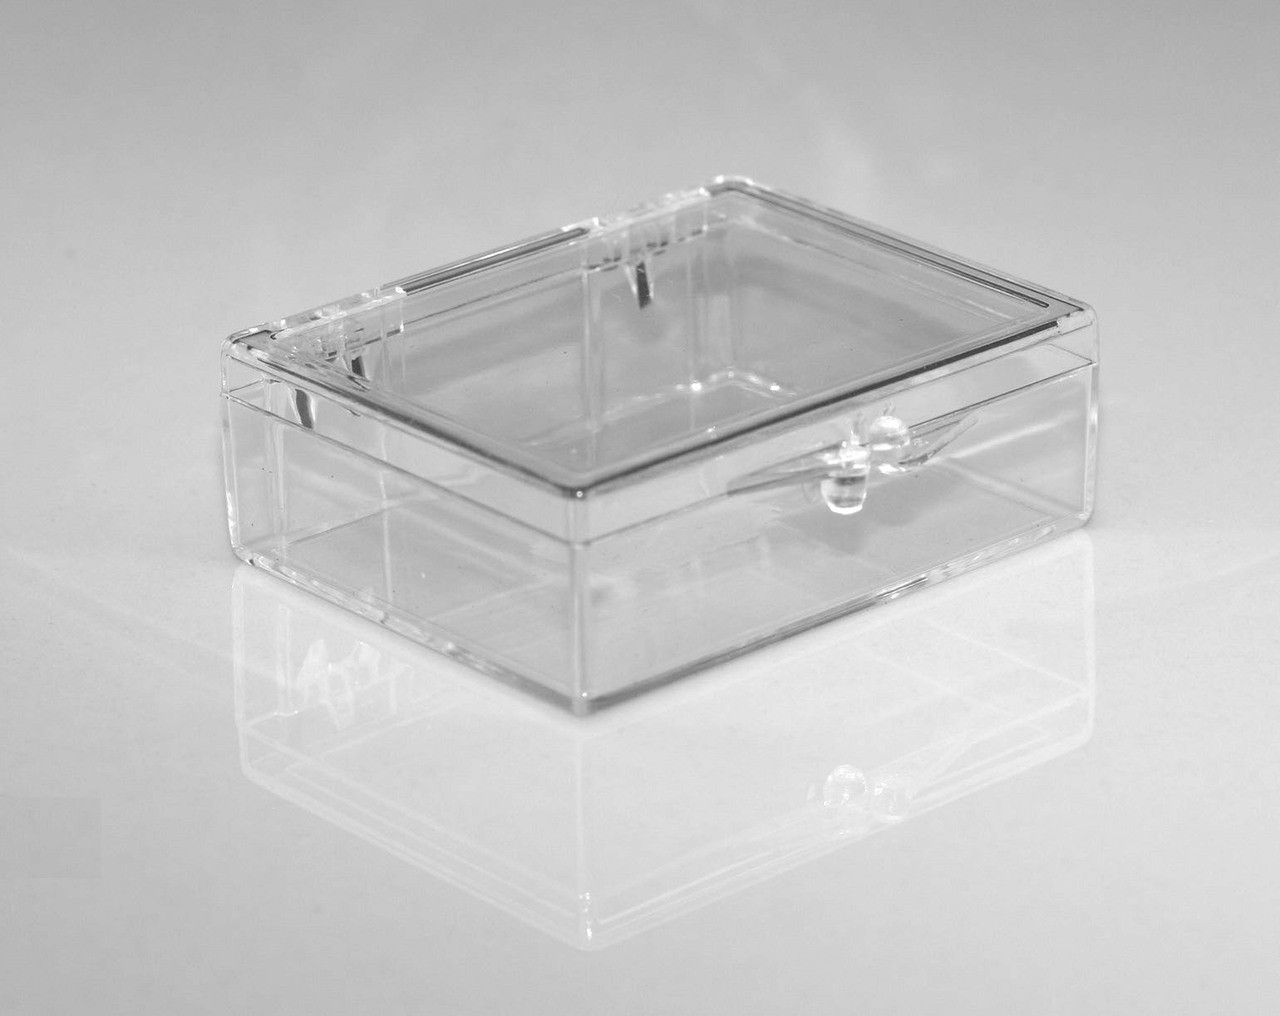 2 1 8 X 1 5 8 X 5 8 Small Plastic Box With Hinged Lid 210